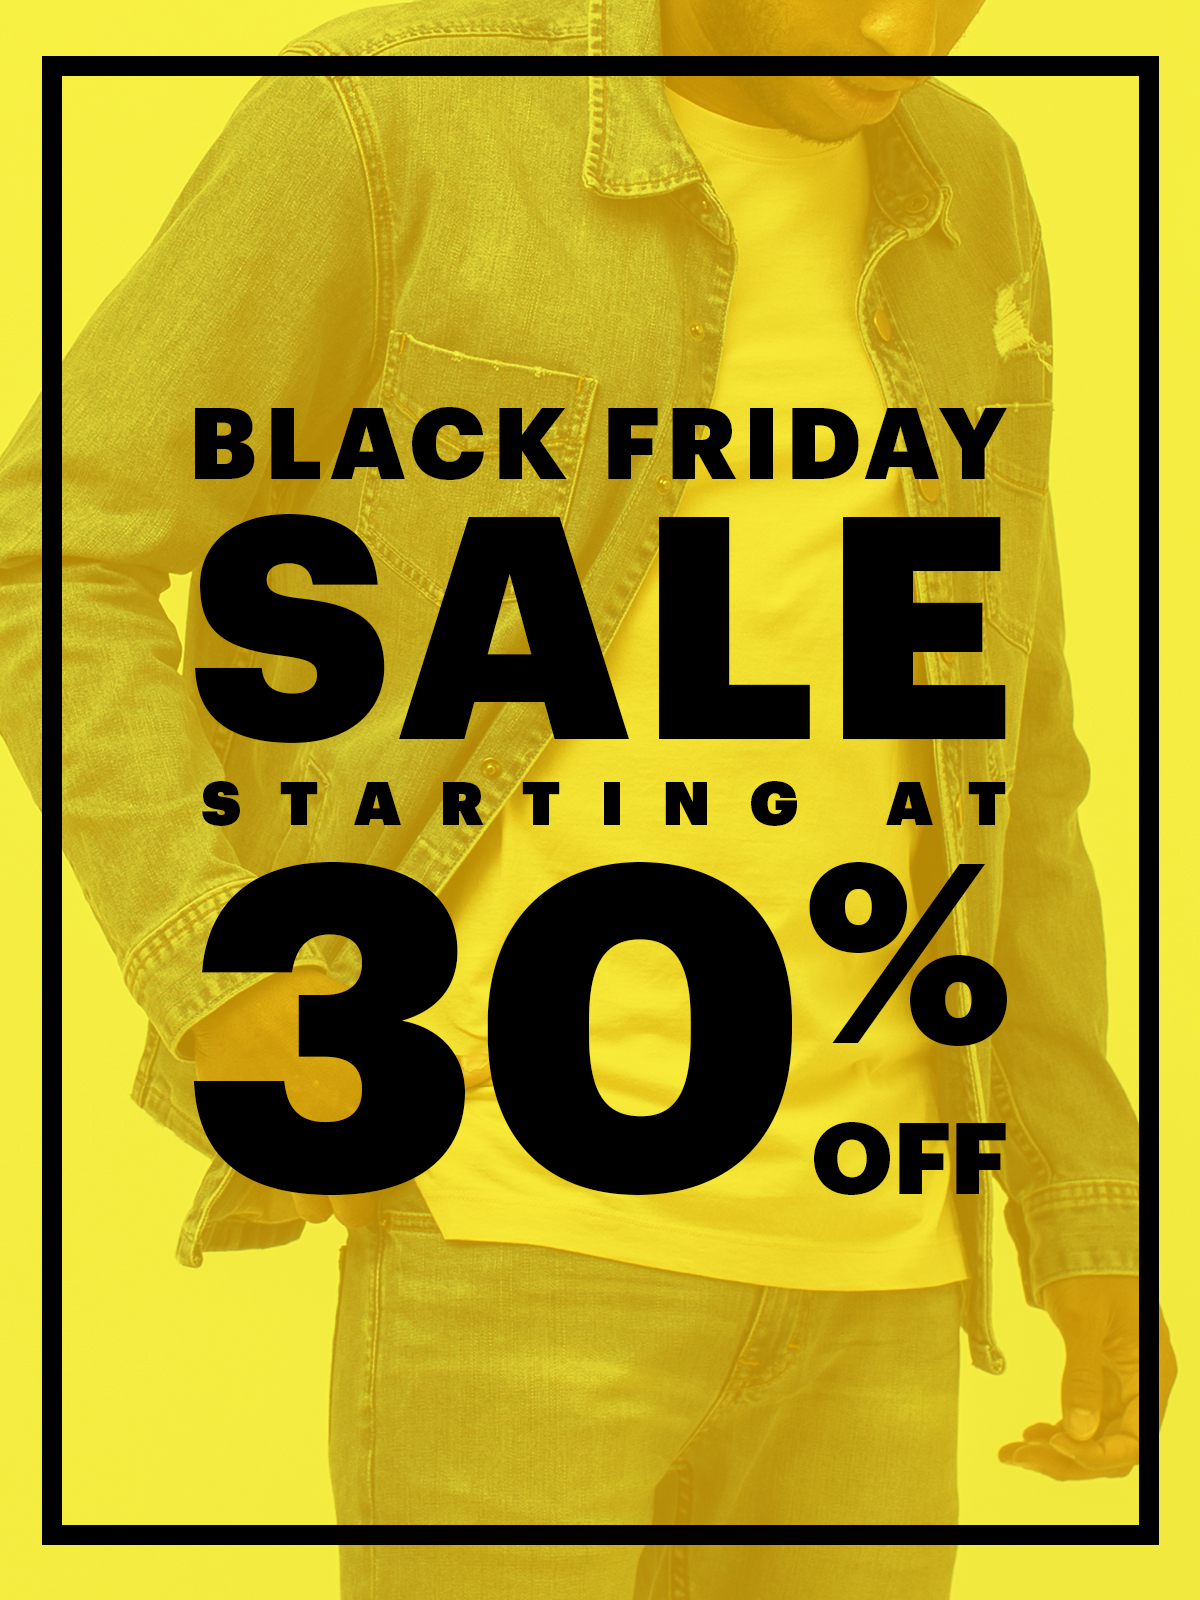 Black Friday Starts Now! 30% Off Sale